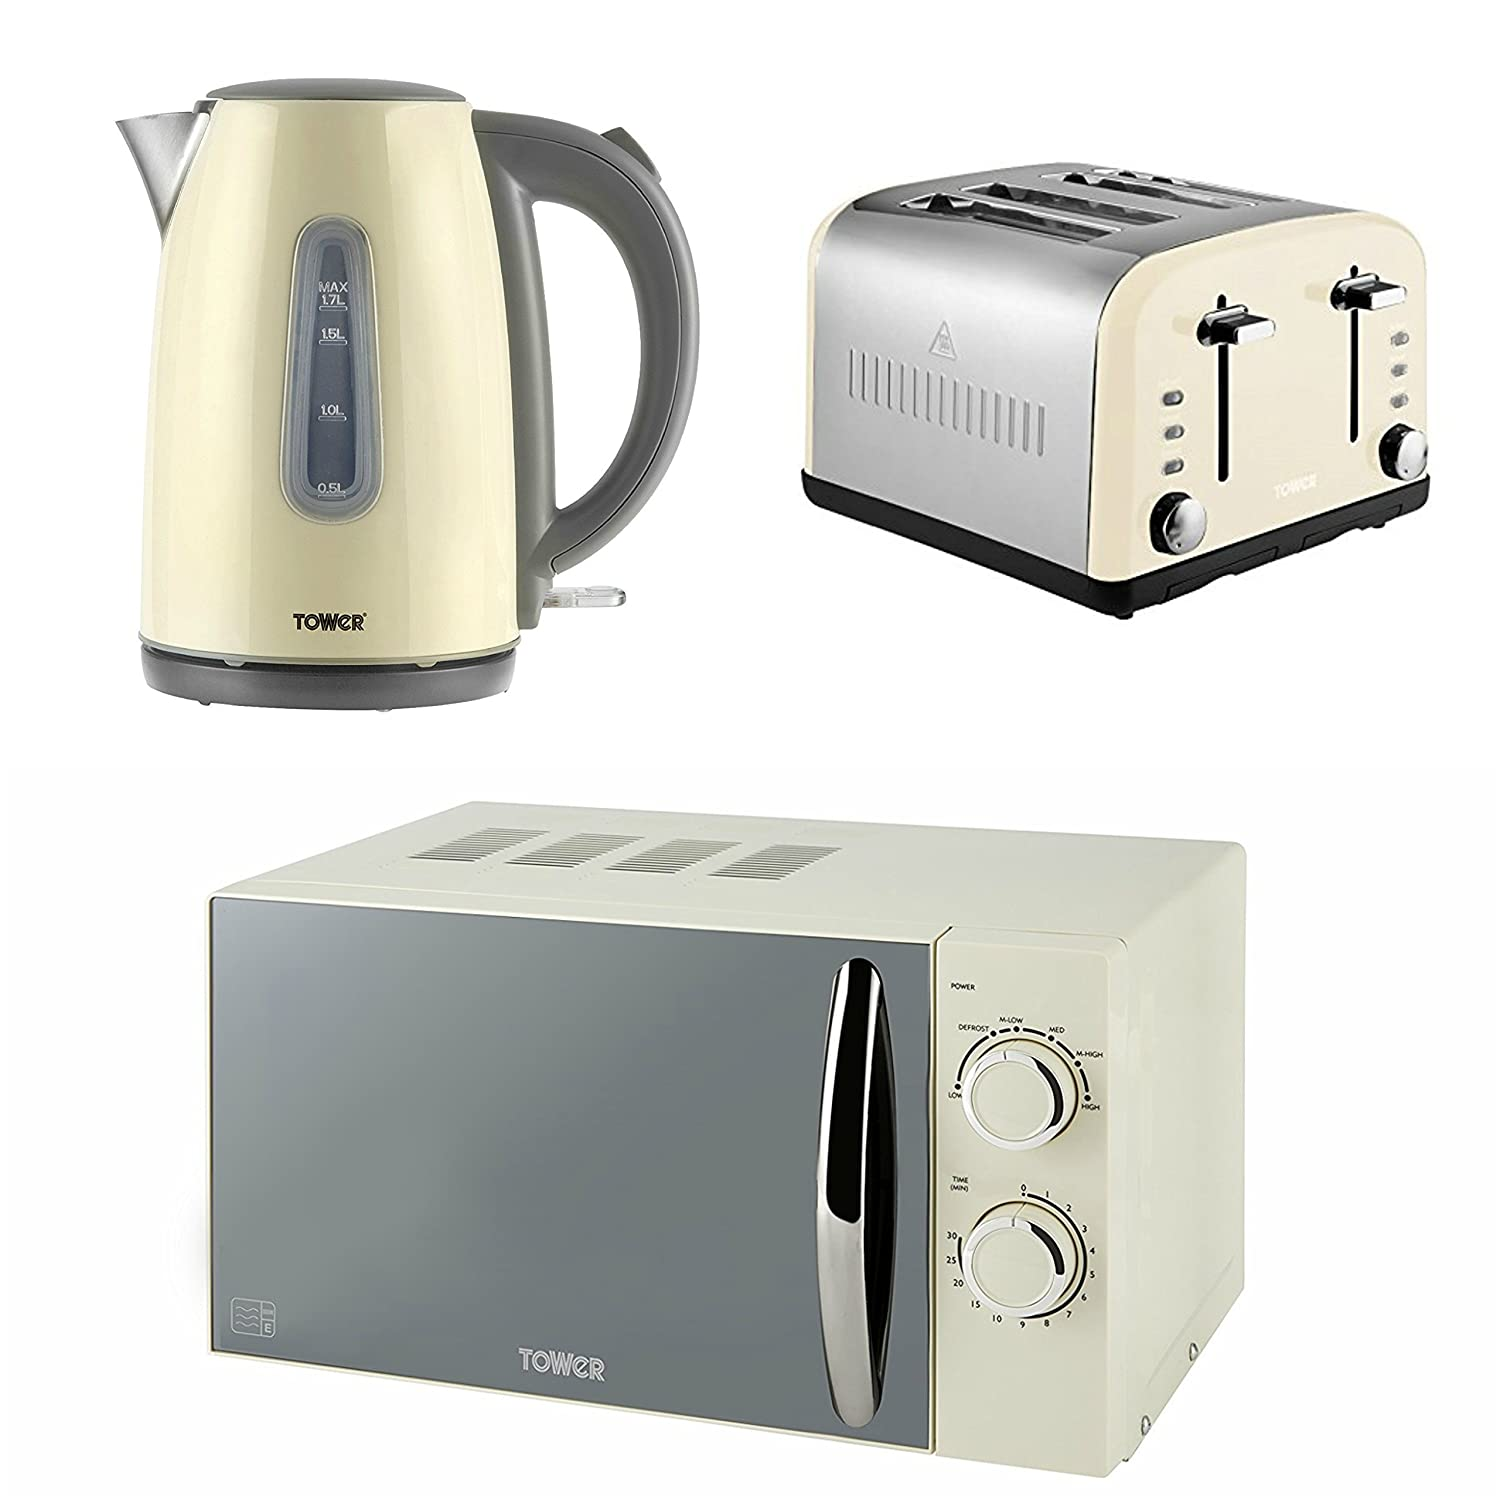 Tower Modern Infinity Cream Kitchen Set - a 1.7L Jug Kettle with Window a 4 Slice Toaster and a Manual Solo Microwave Microwave, 800 W, 20 L